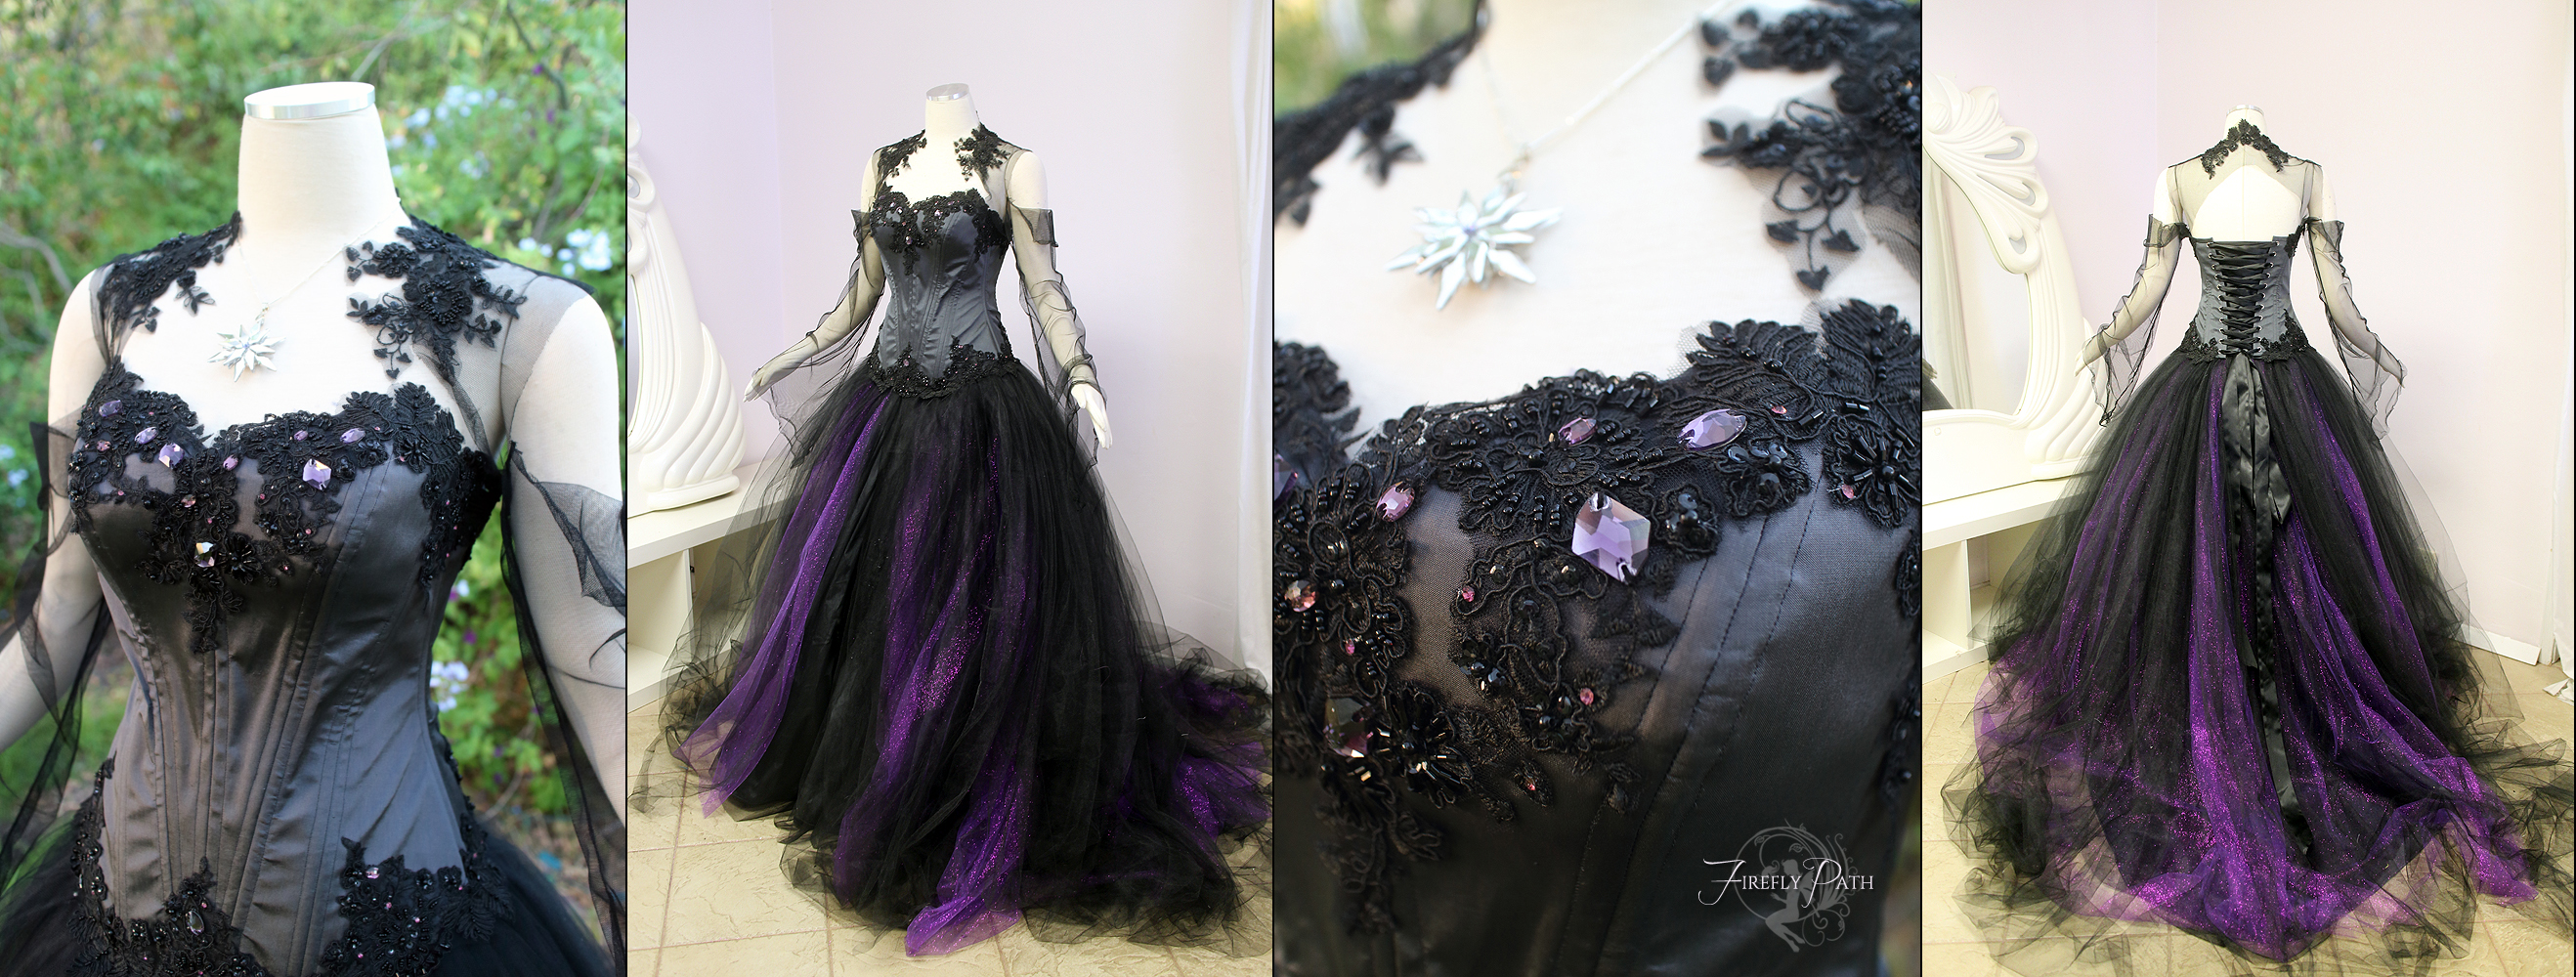 Halloween Wedding Dress by Firefly-Path on DeviantArt